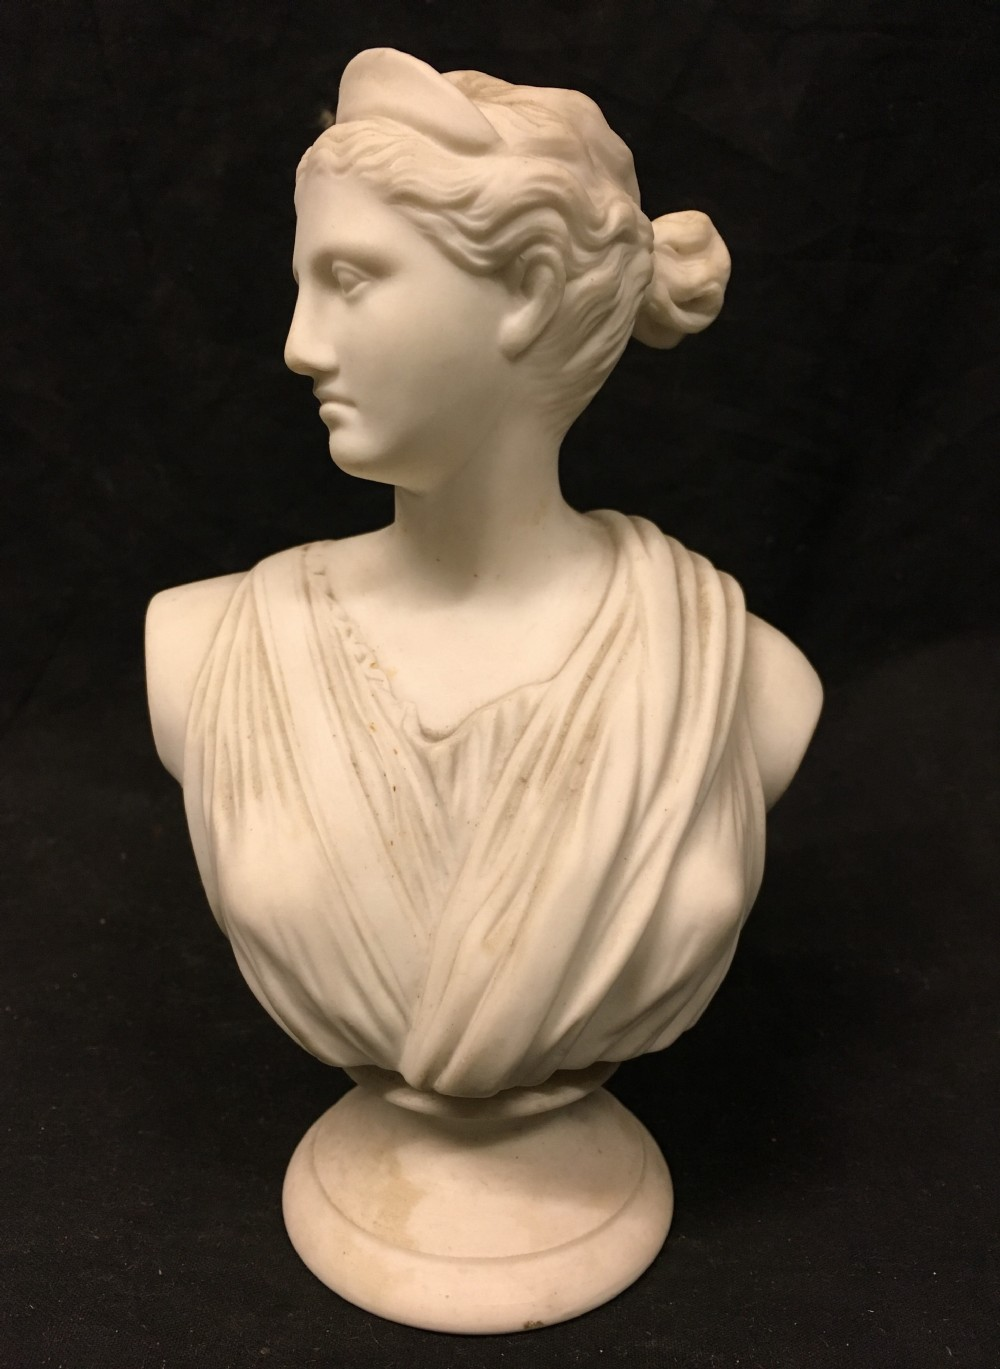 c19th bust of aphrodite